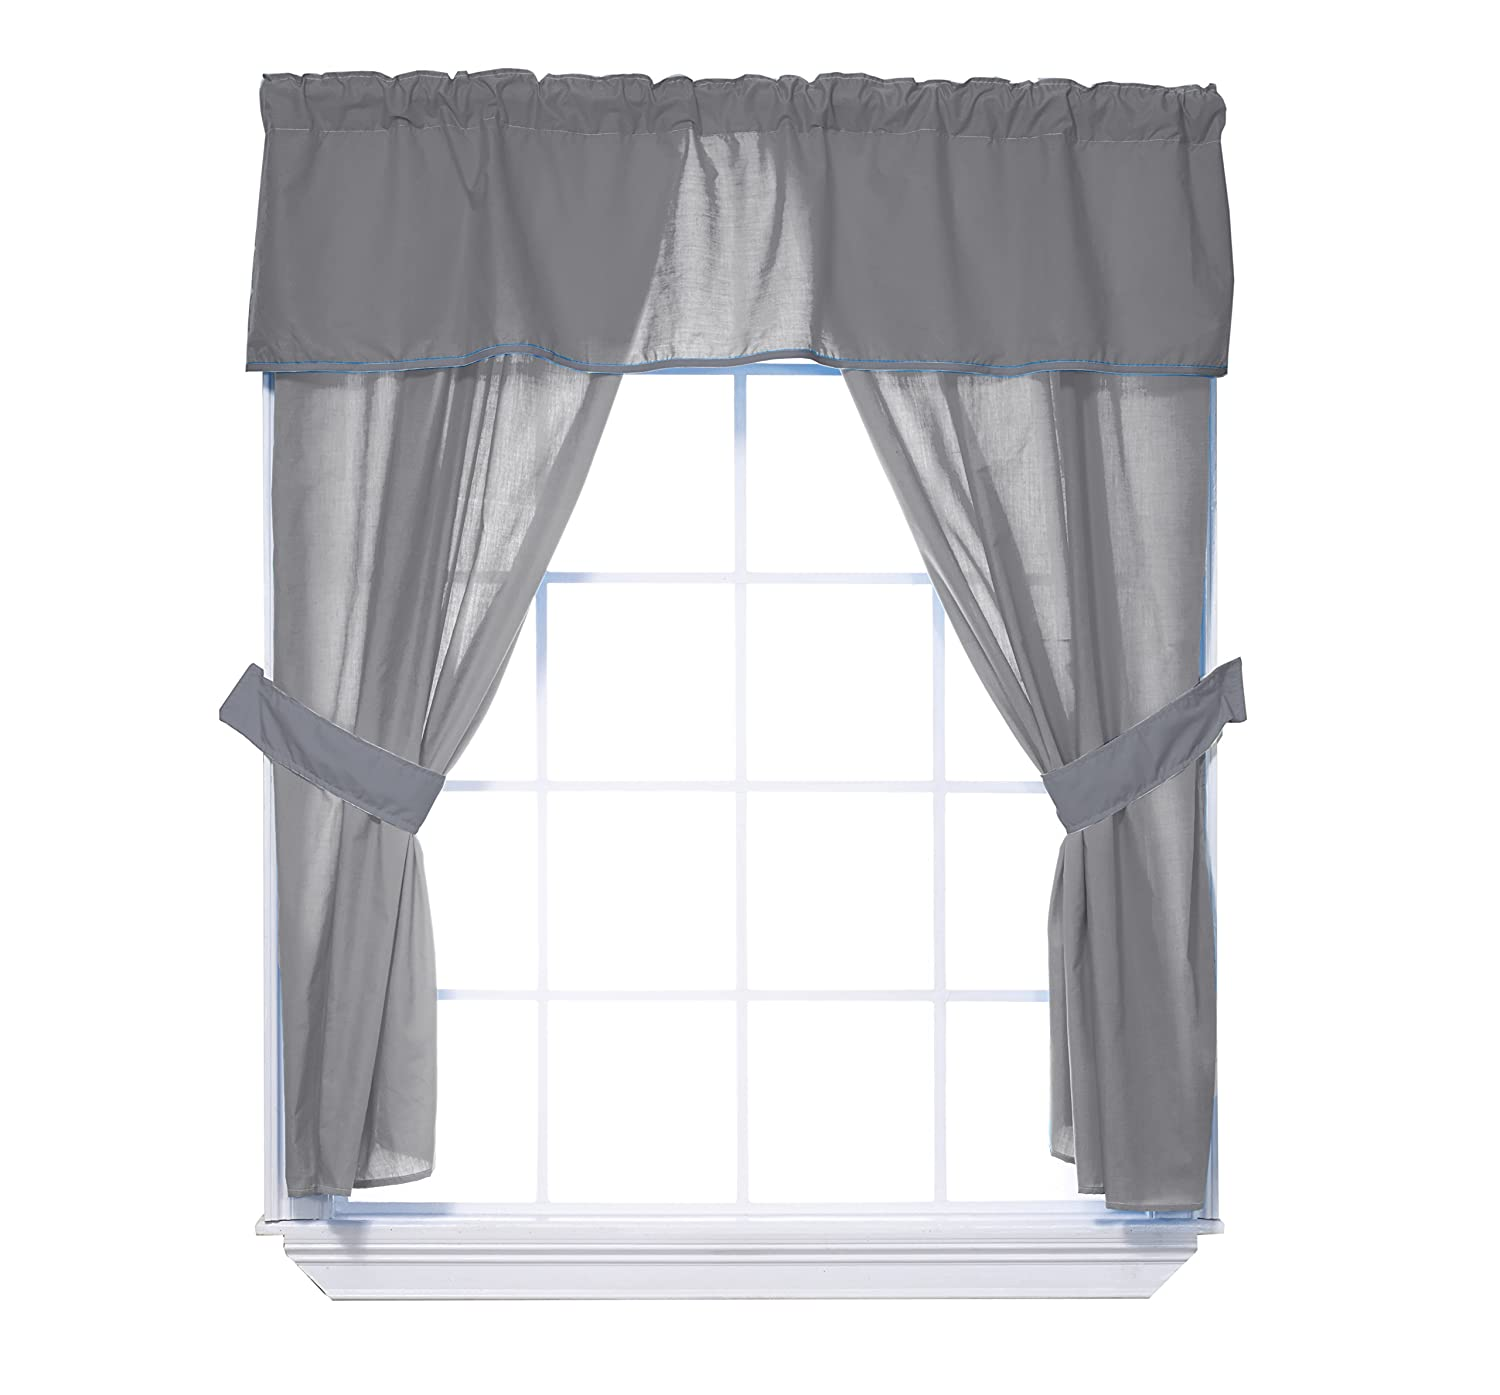 Mint Baby Doll Bedding Solid 5-Piece Window Valance Curtain Set